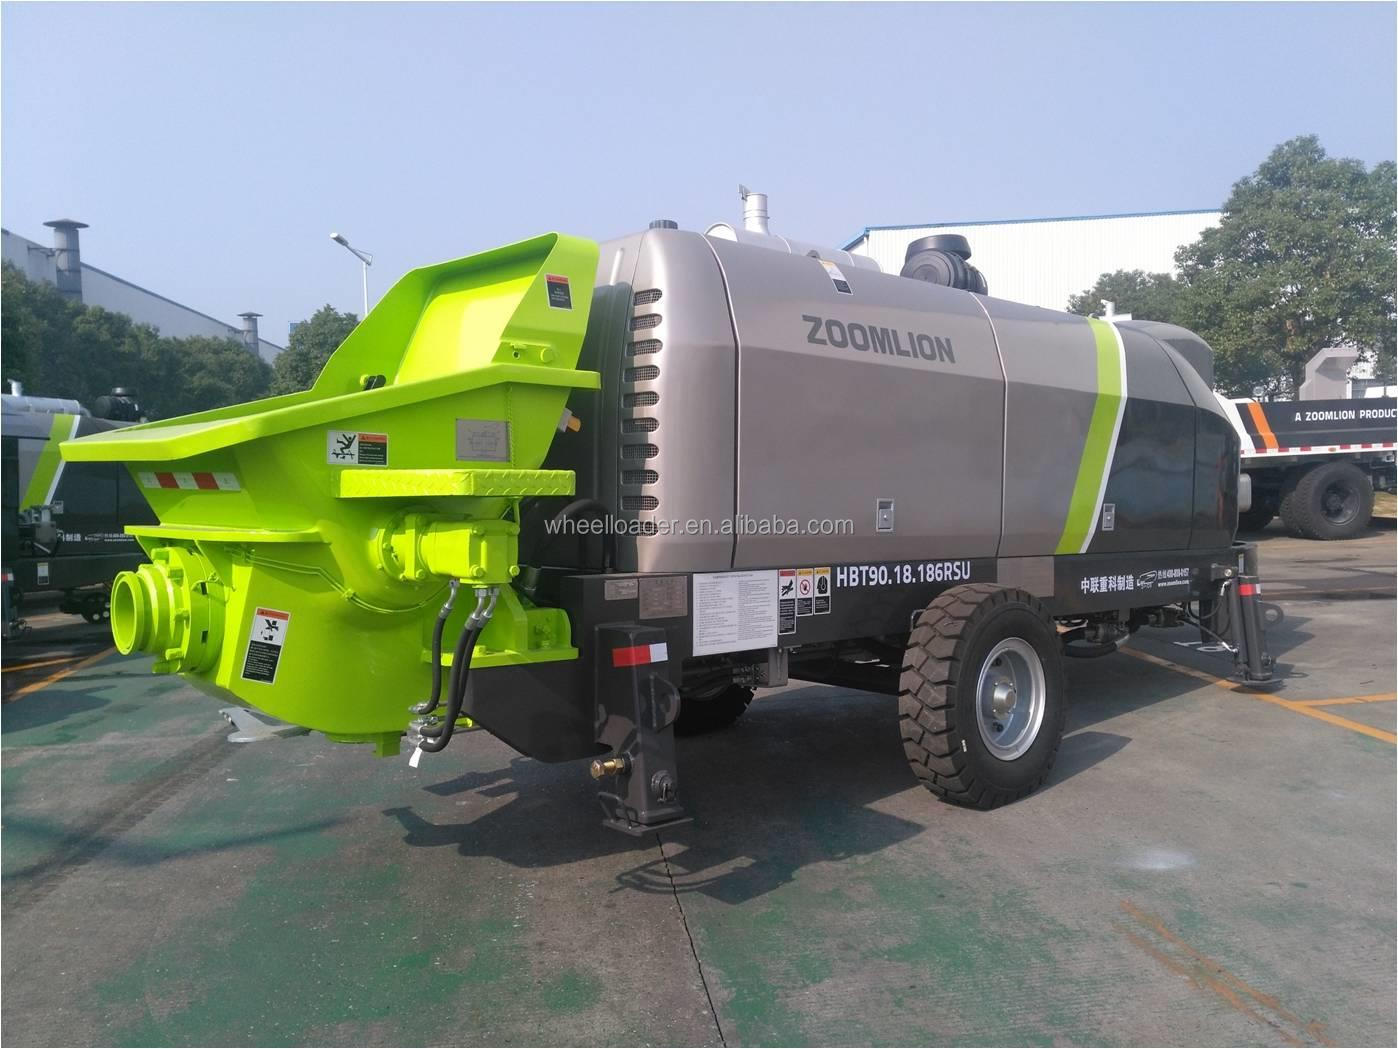 HBT40 100Bar ZOOMLION Portable Concrete Pump